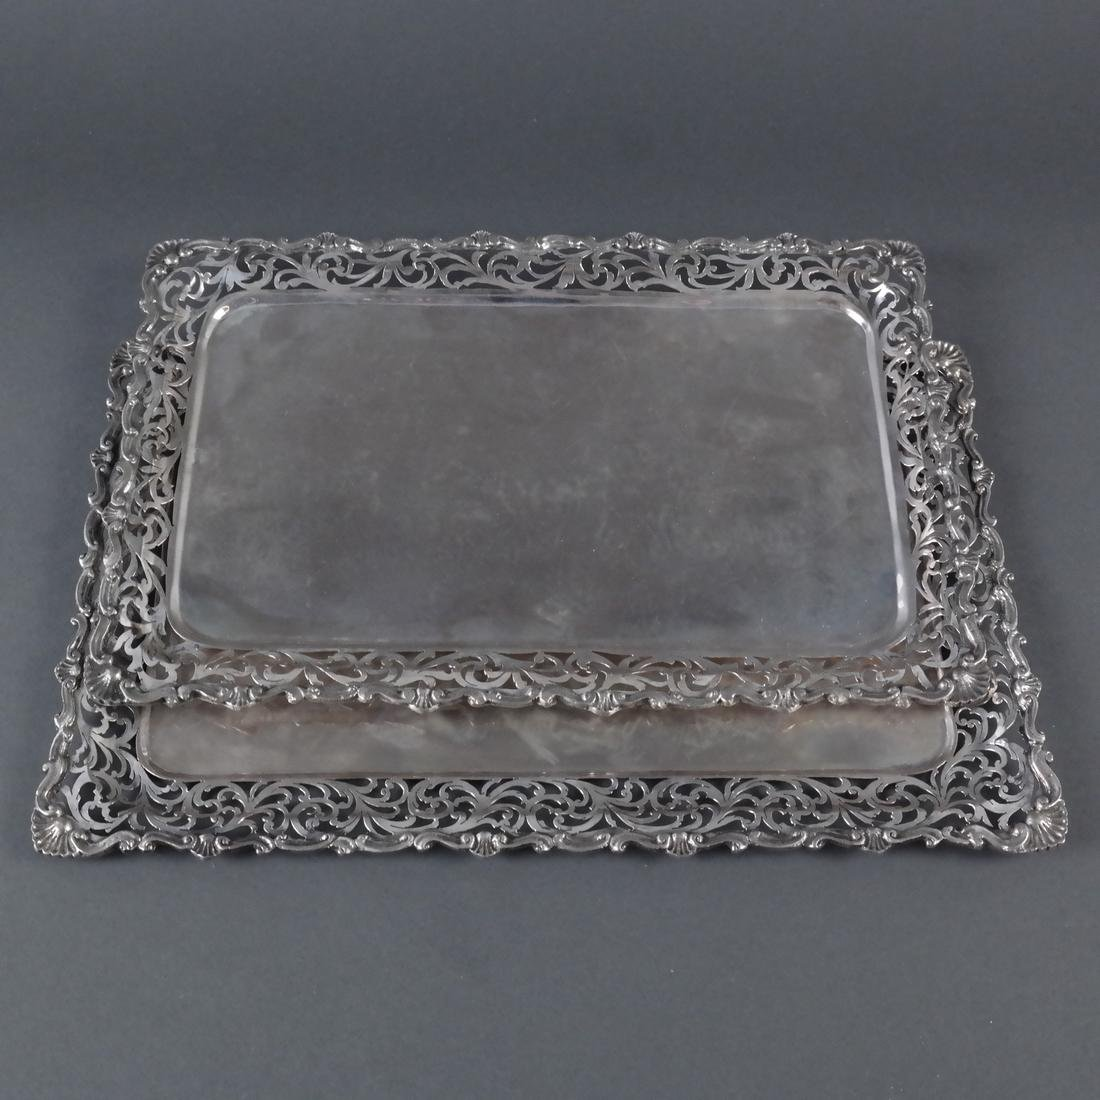 2 .800 Standard Silver Rectangular Trays - 3